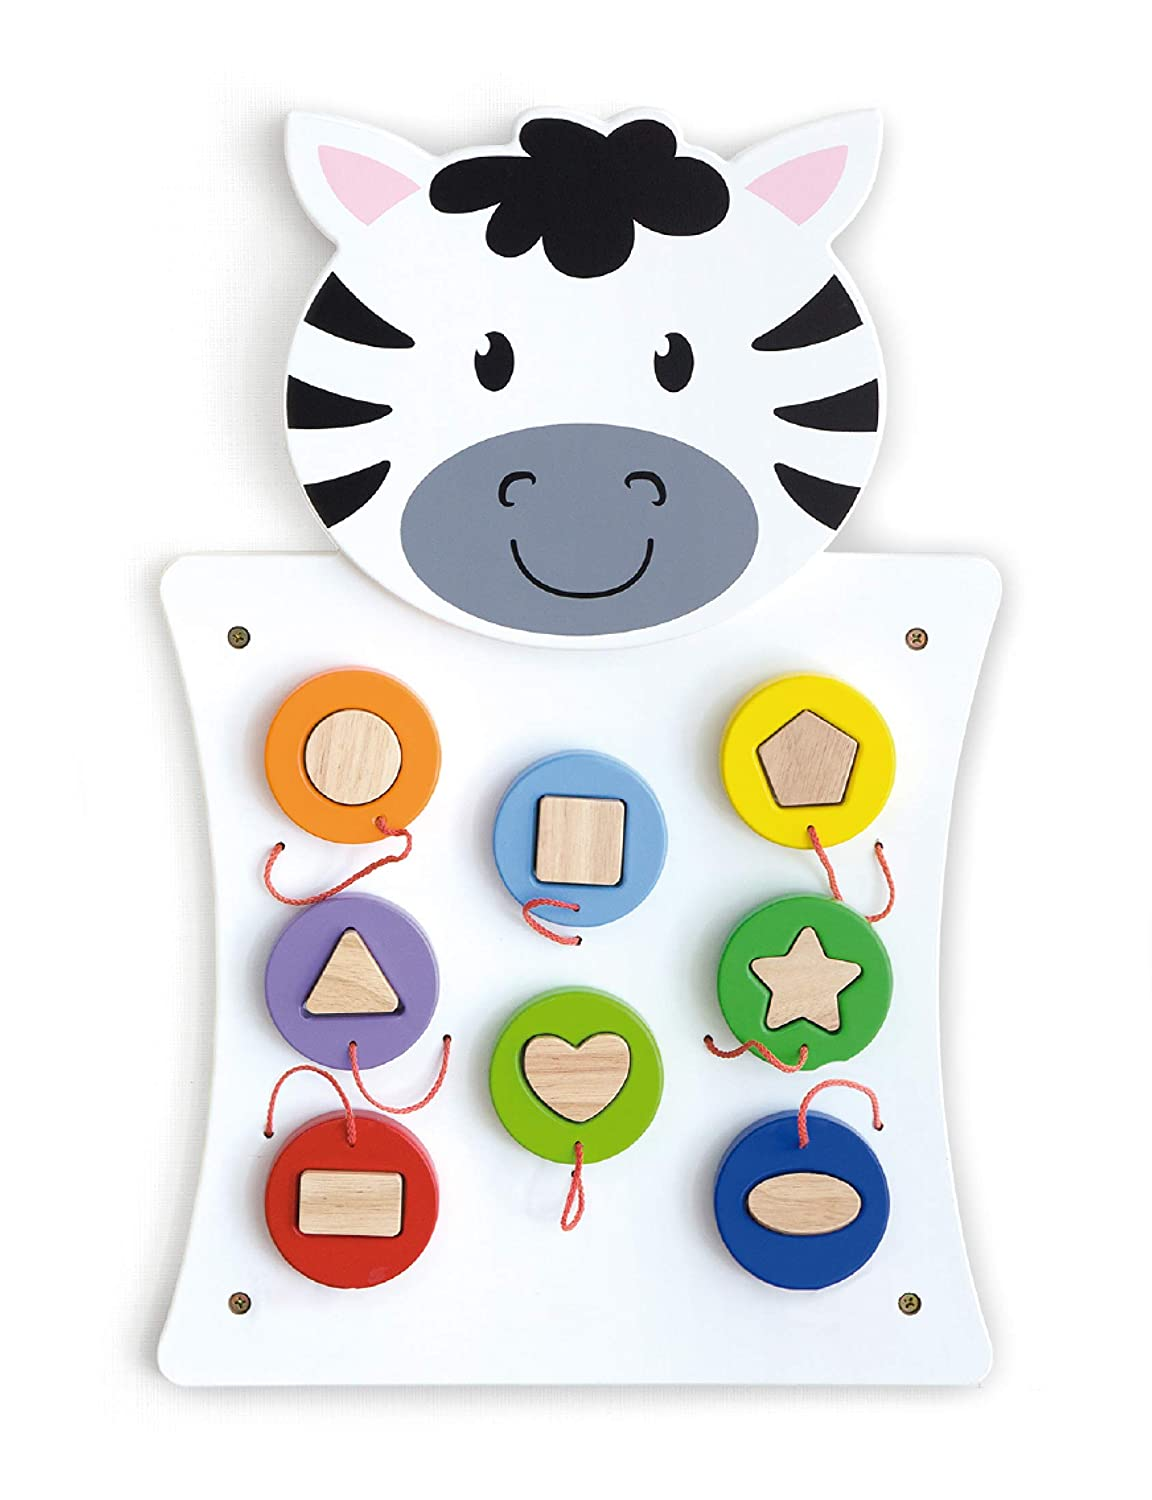 Learning Advantage Zebra Activity Wall Panel - 18M+ - in Home Learning Activity Center - Wall-Mounted Toy for Kids - Decor for Bedrooms and Play Areas